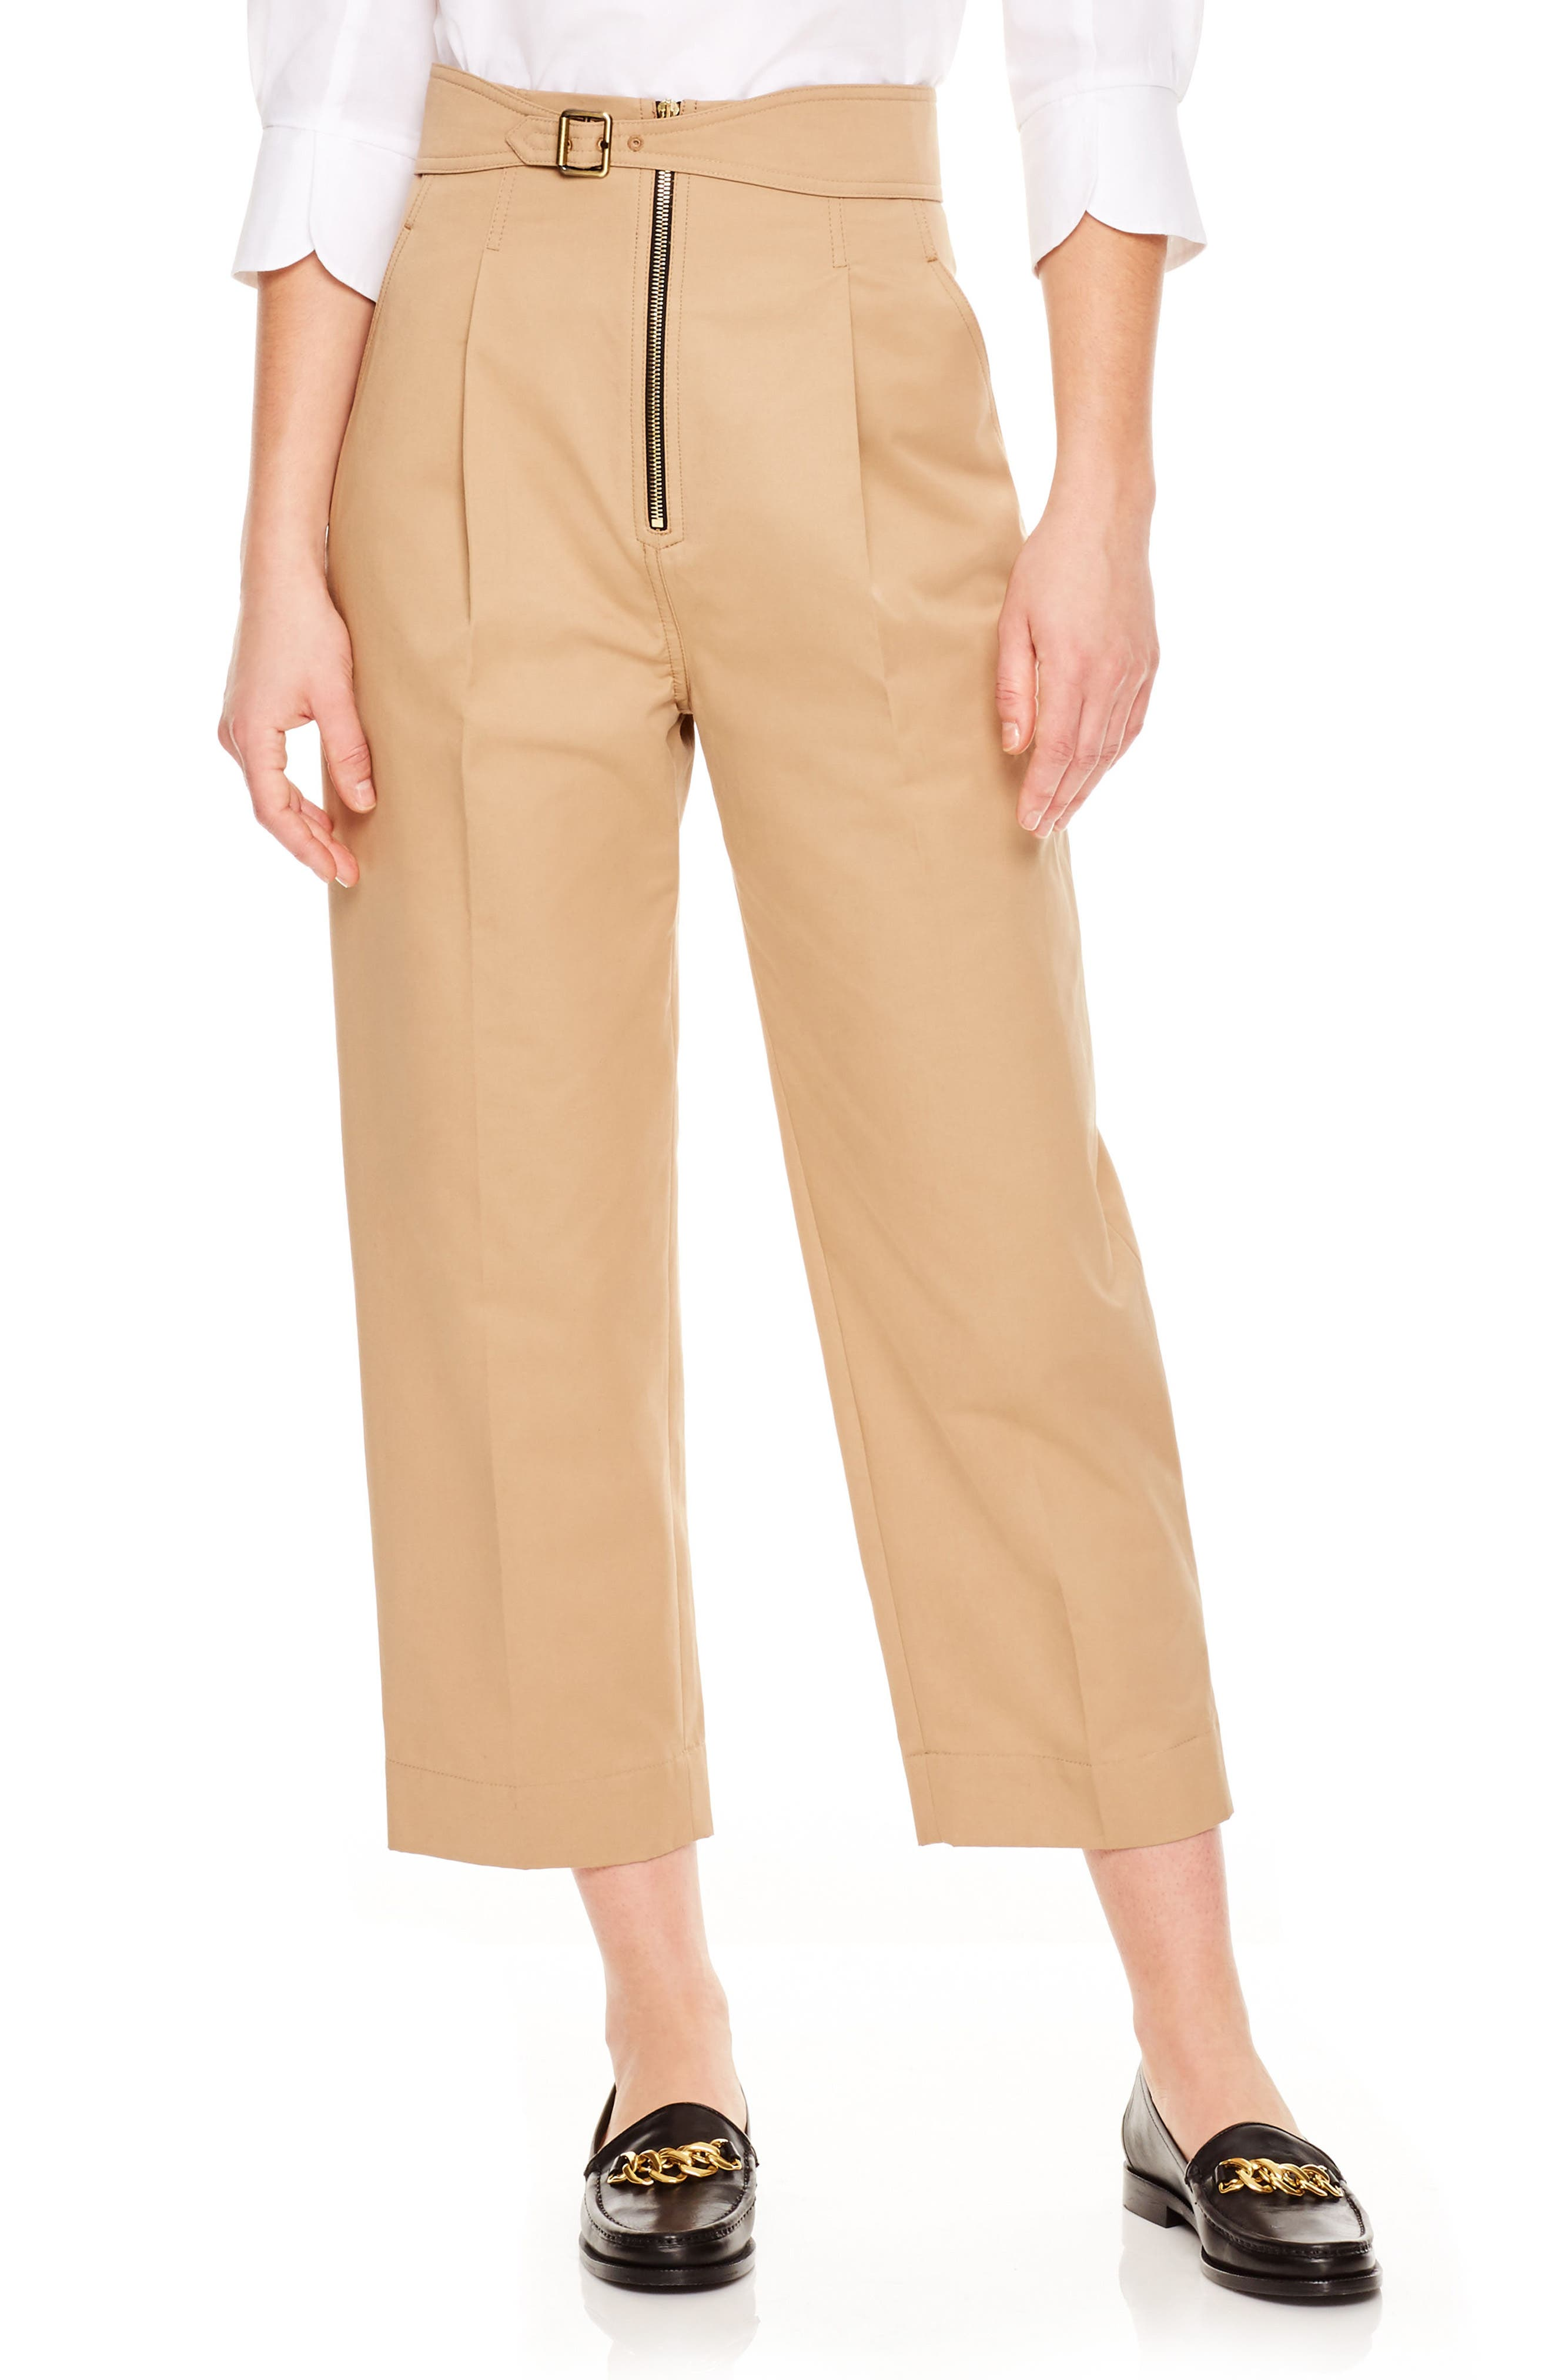 SANDRO Beige Wide Leg Crop Pants, Main, color, 250